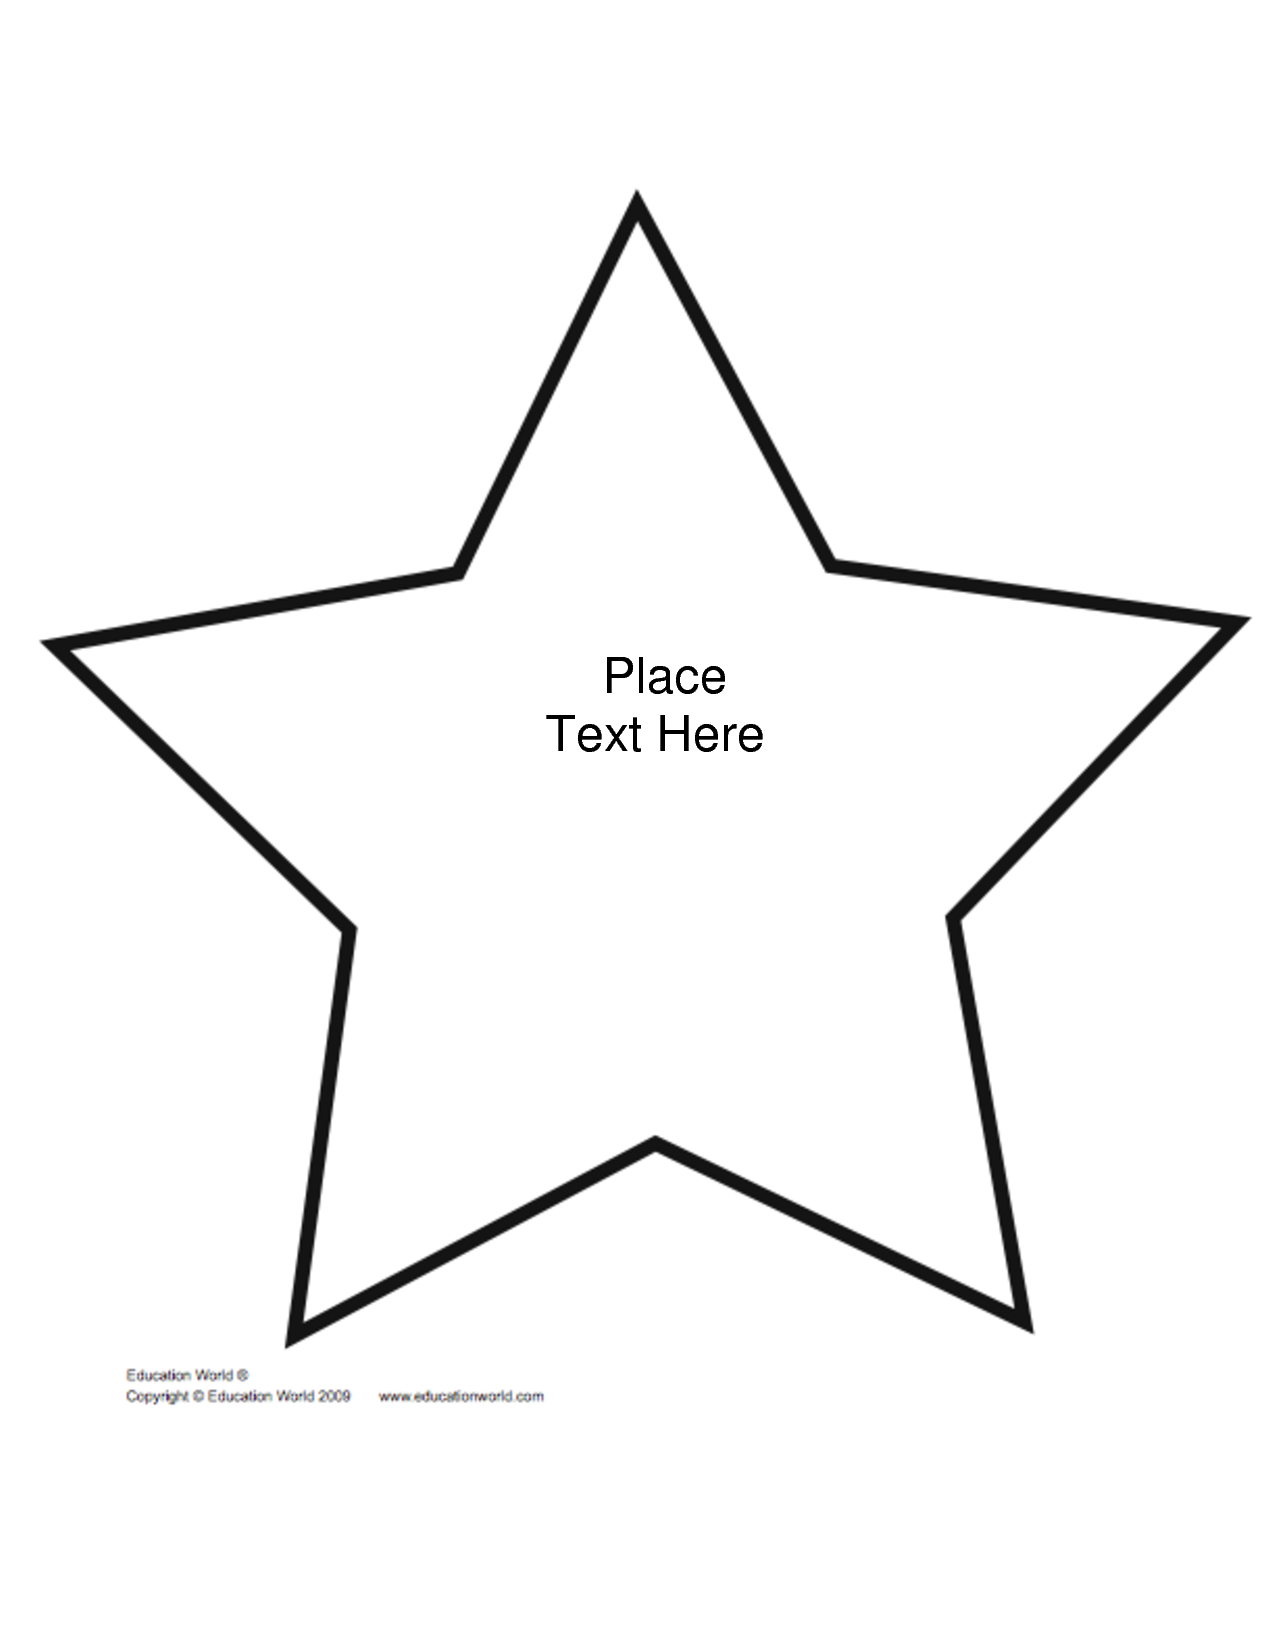 Free+Printable+Star+Shape+Templates | Biblical Preschool Lessons - Free Printable Shapes Templates